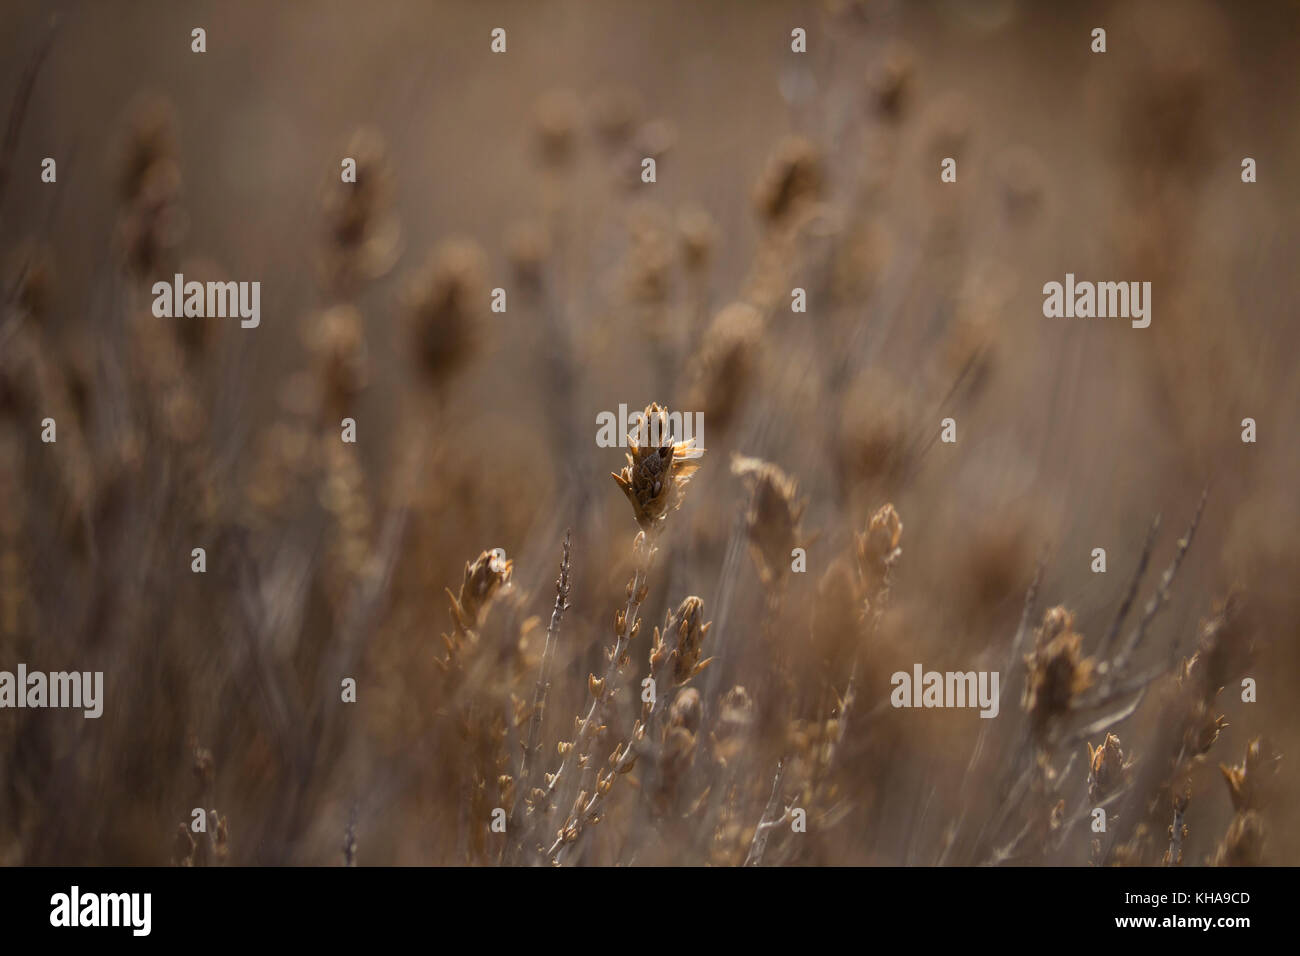 Sunbeam on dry wildflowers, earthy colors, brown, beige and gray, autumn, fall natural landscape. - Stock Image